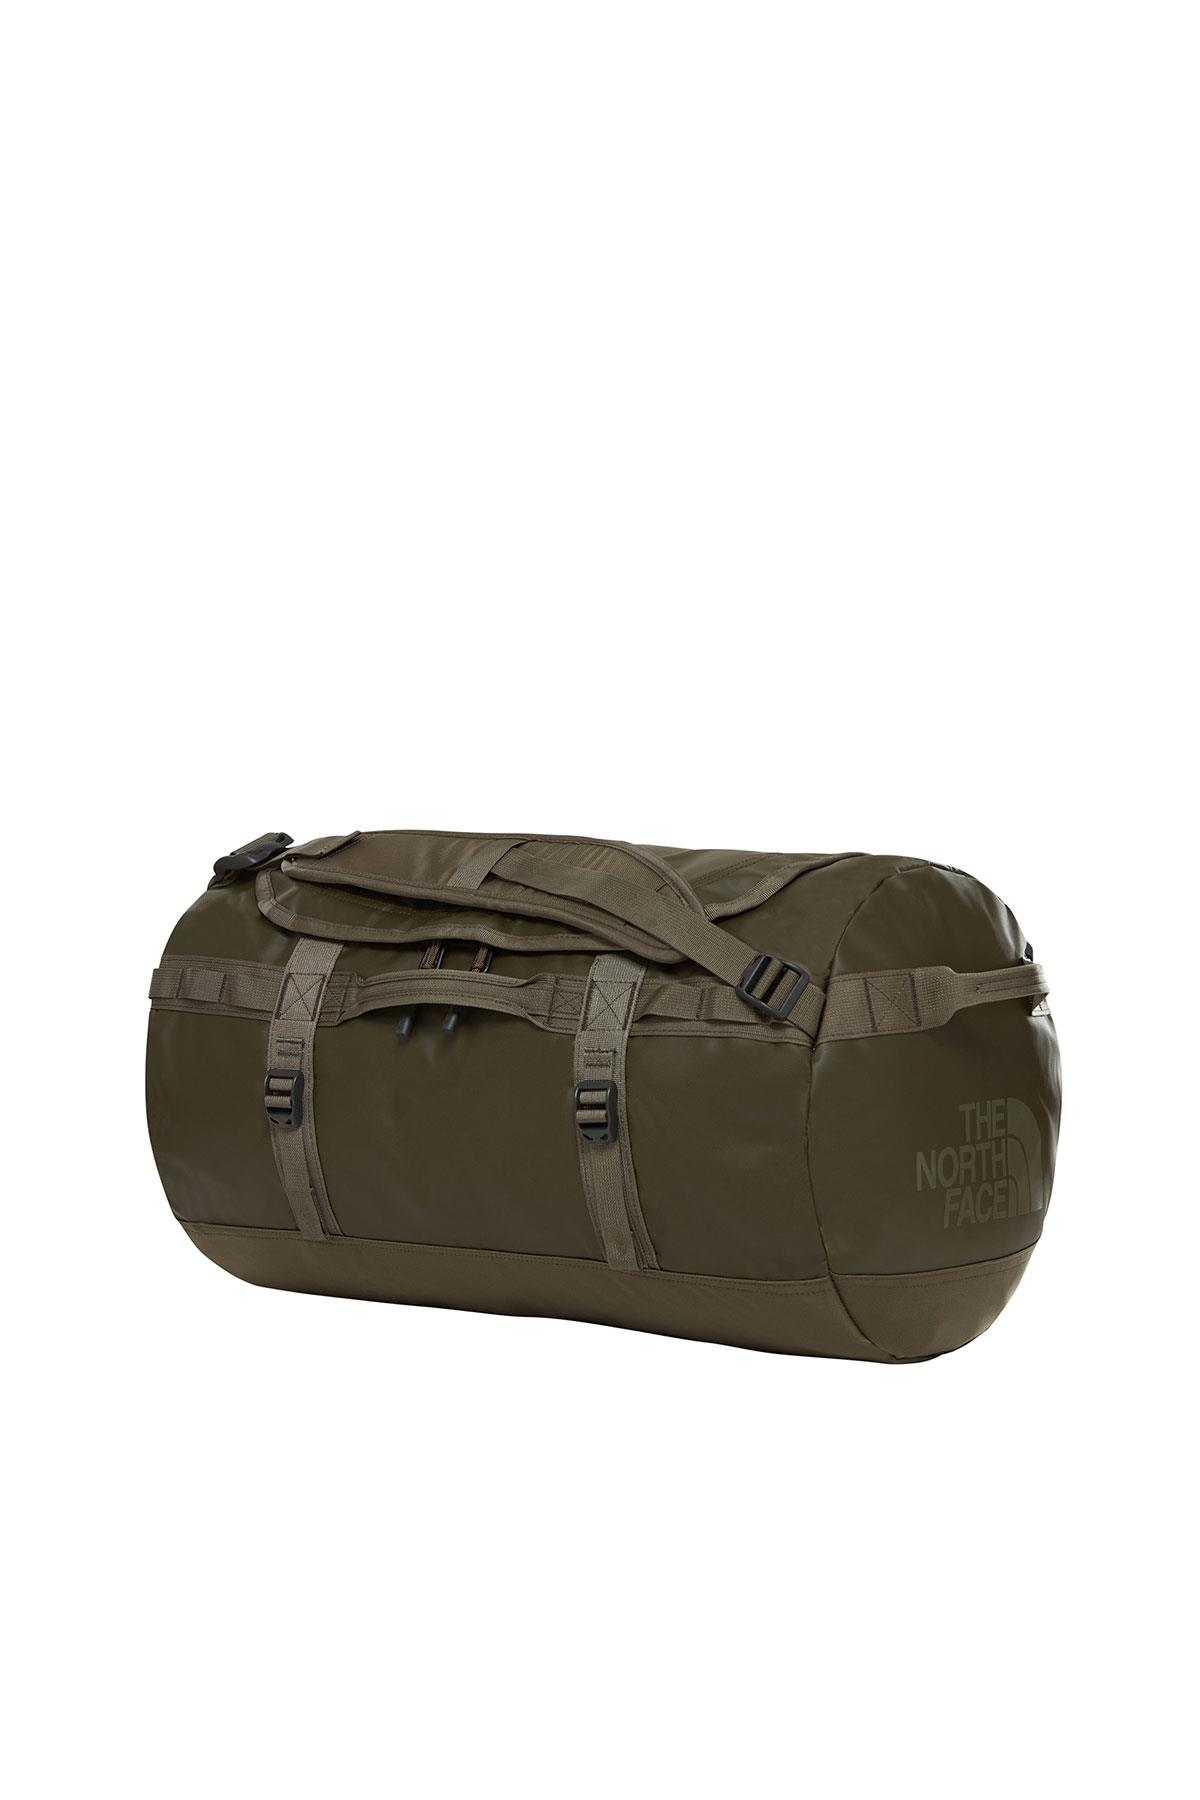 The Northface Base Camp Duffel - S T93Eto79L Çanta